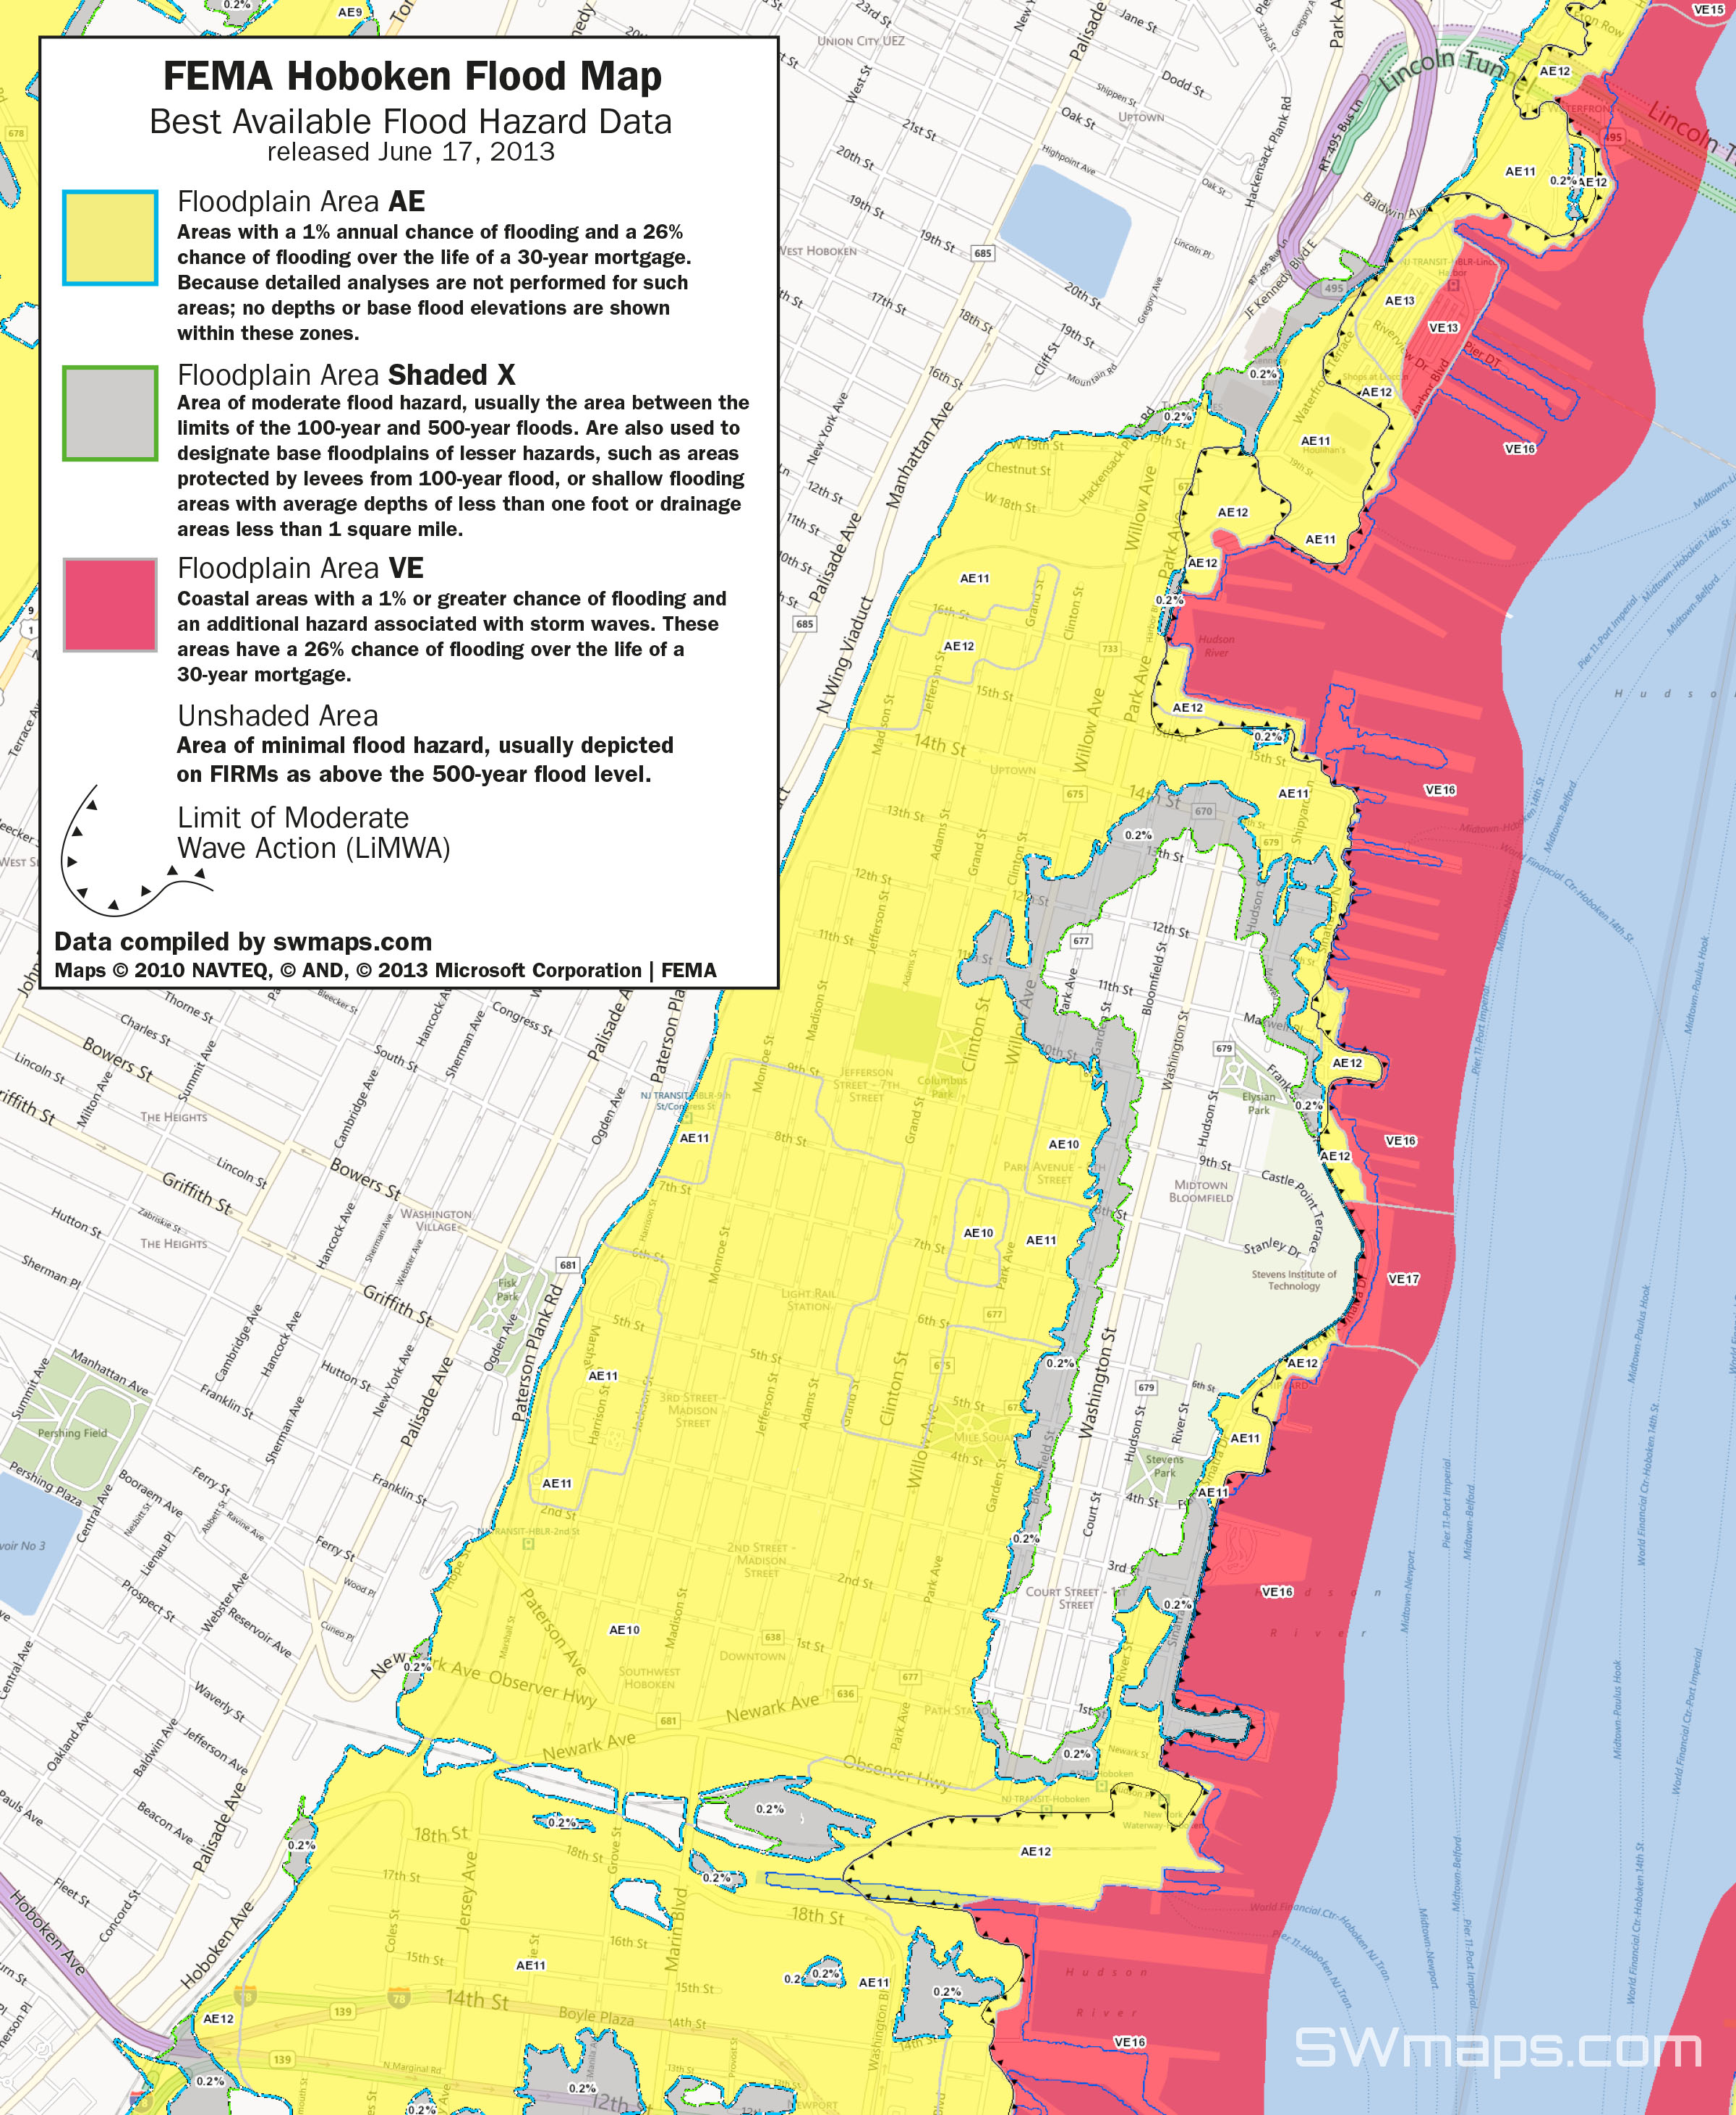 click for larger version. new hoboken flood map fema best available flood hazard data